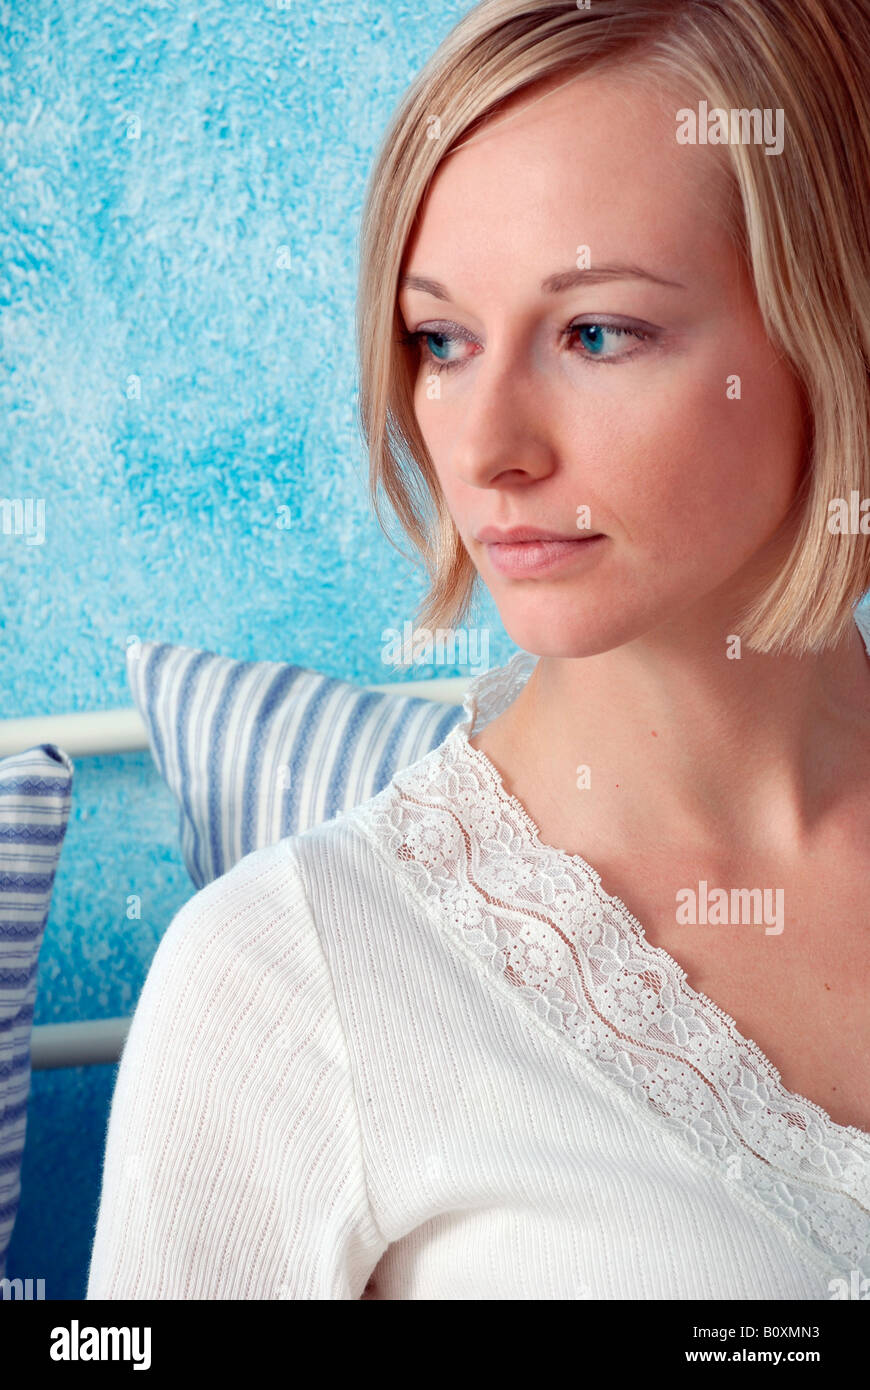 Blonde woman, portrait - Stock Image